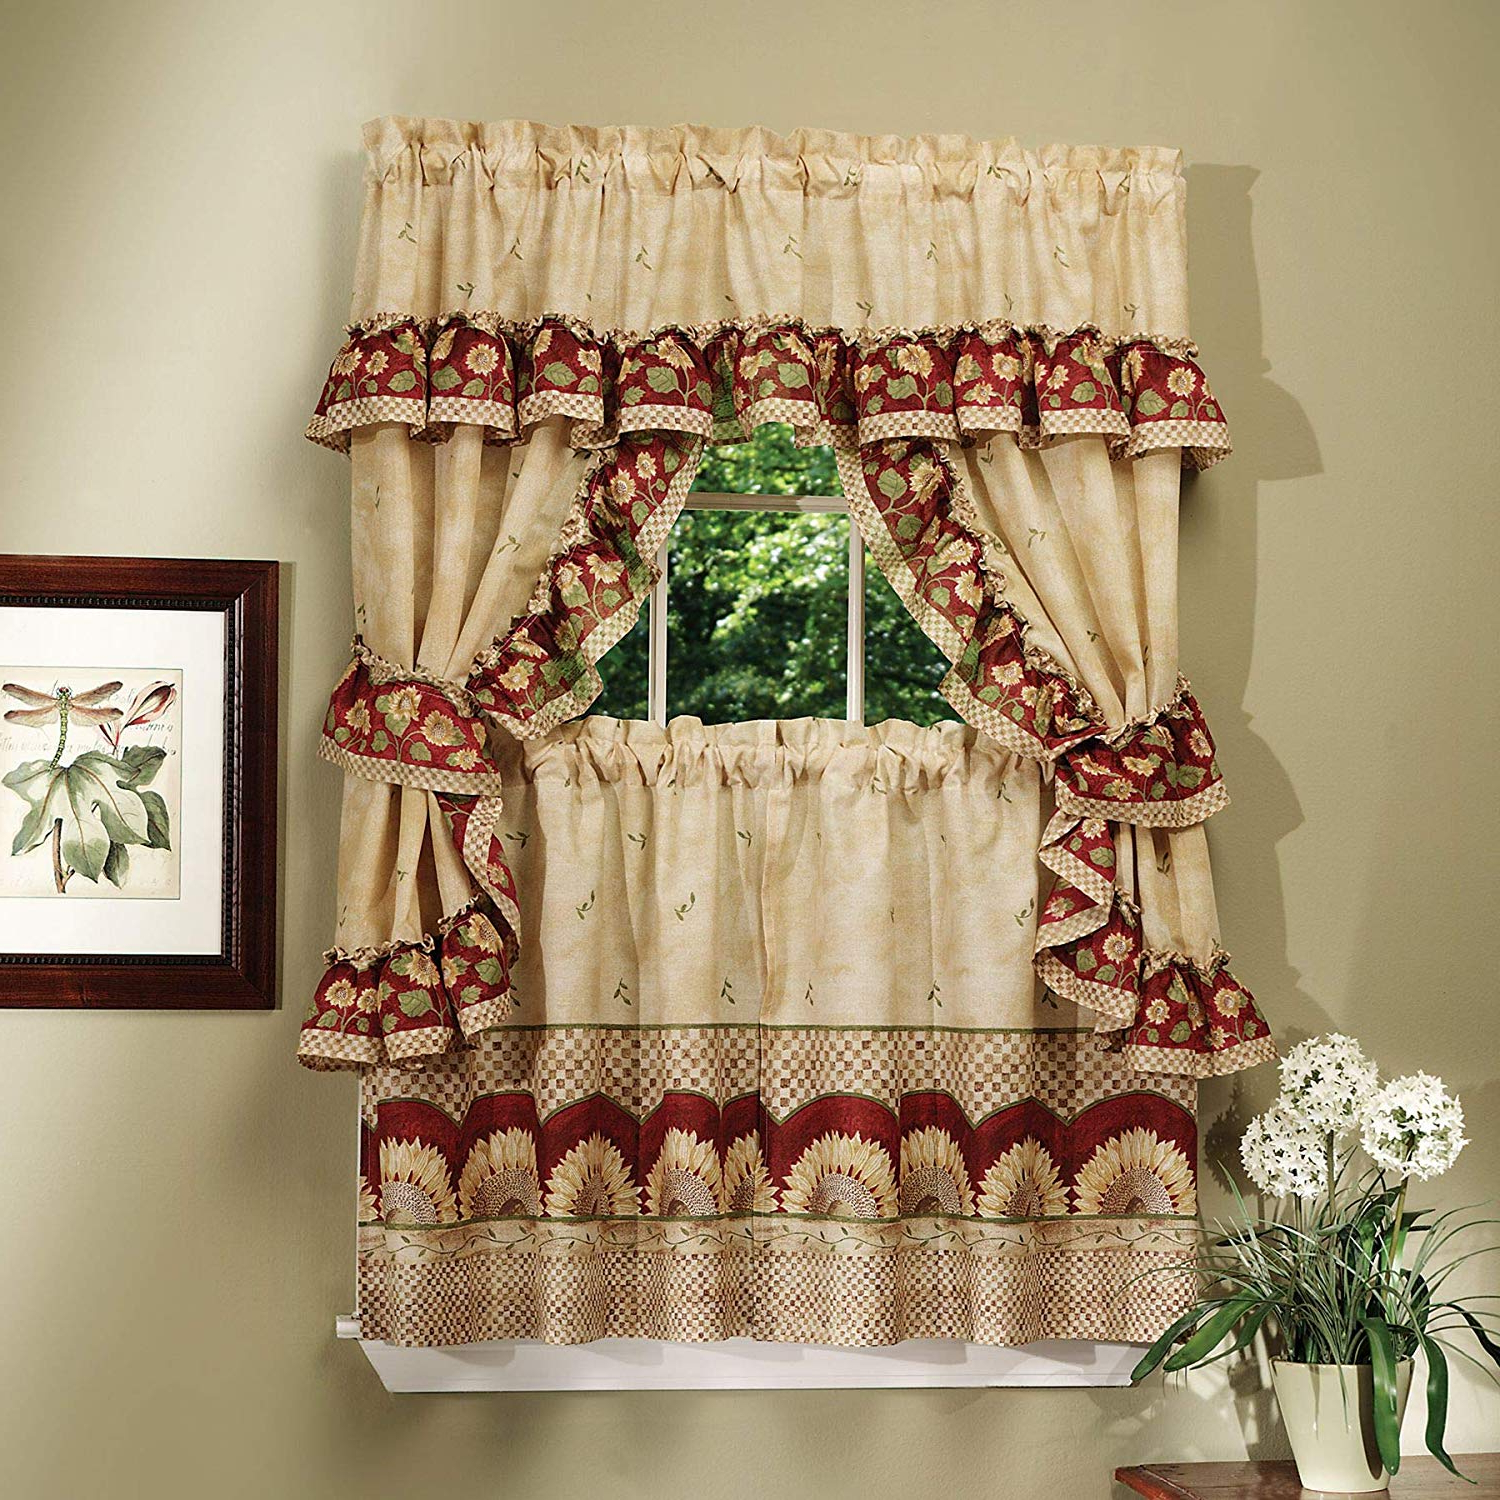 Best And Newest Window Treatment Sets Intended For Sunflower Cottage Kitchen Curtain Tier And Valance Sets (View 14 of 20)